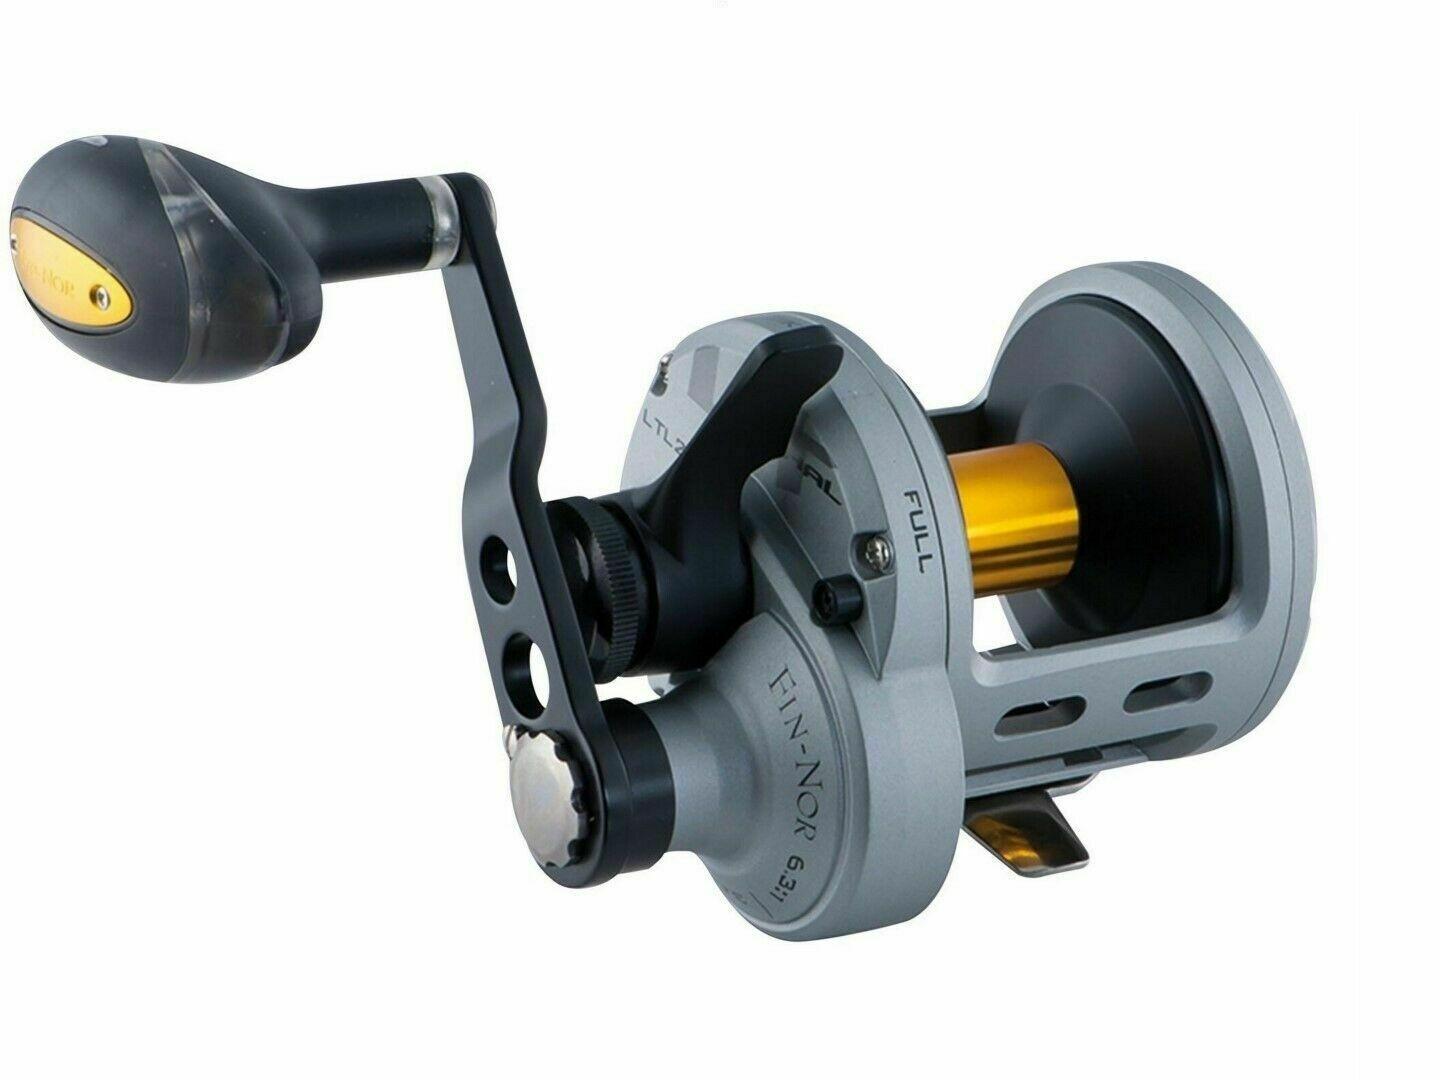 FinNor Lethal LTL30 OH Lever Drag Overhead pesca Reel  gratuito Line